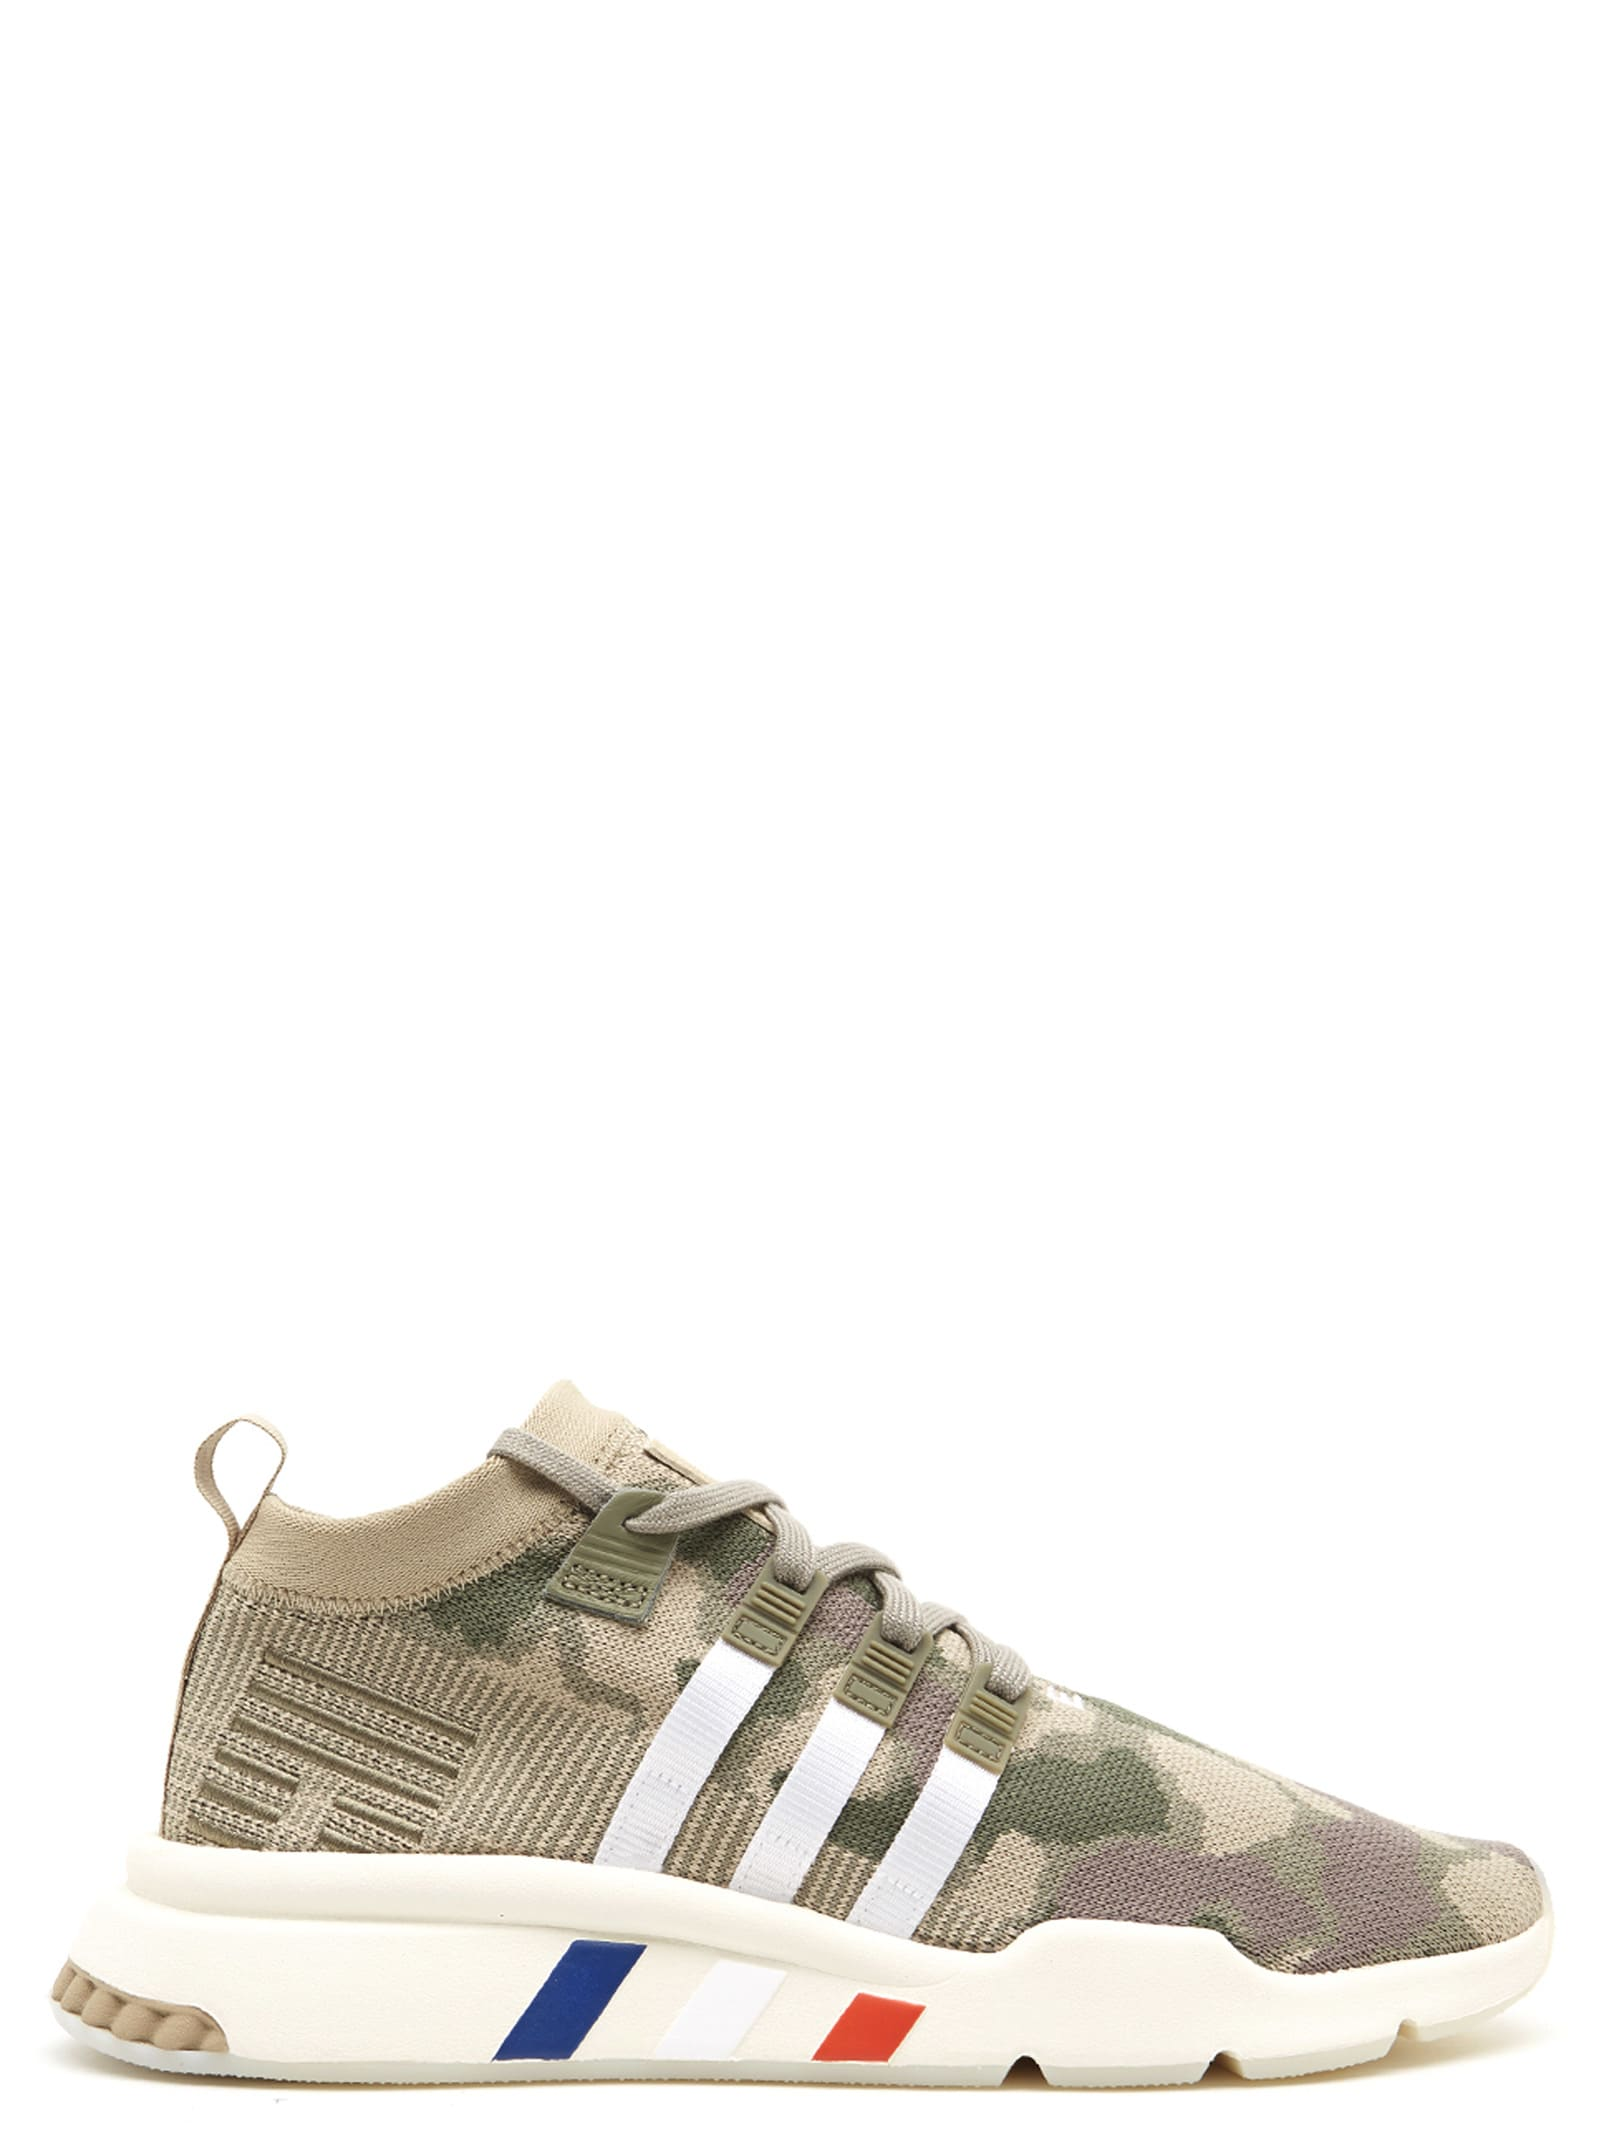 on sale 92642 02ed2 Best price on the market at italist | Adidas Originals Adidas Originals  'eqt Support Mid Adv Pk' Shoes